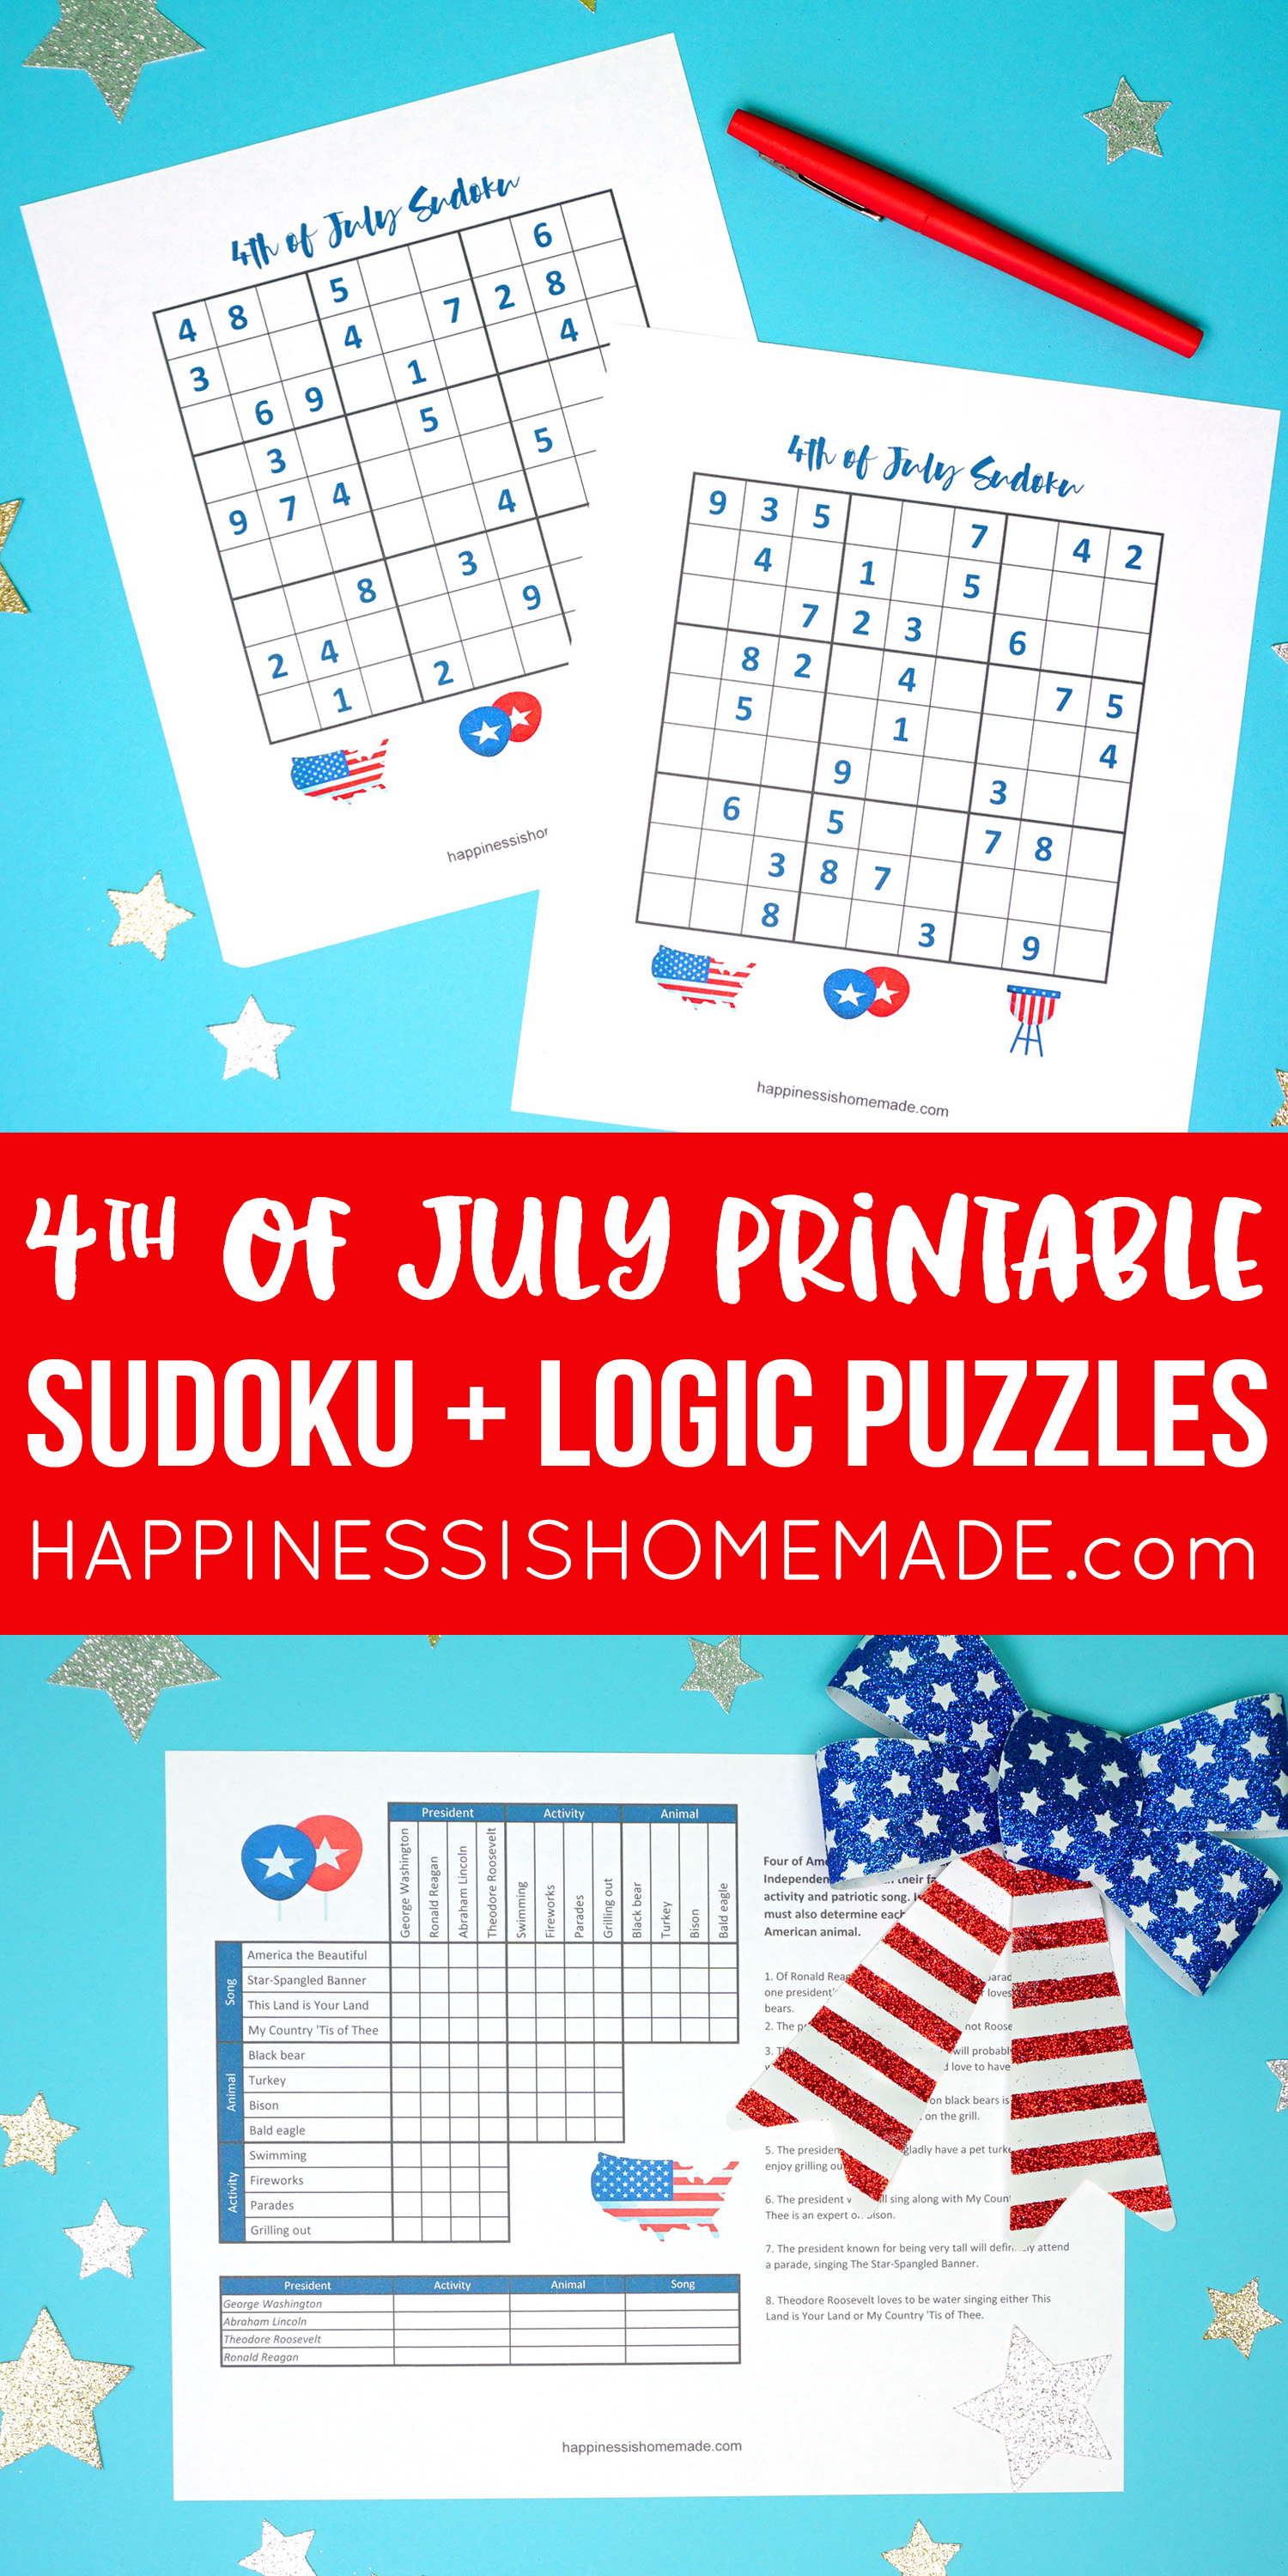 picture regarding Logic Puzzles Printable identify 4th of July Printable Sudoku Puzzles + Logic Puzzle